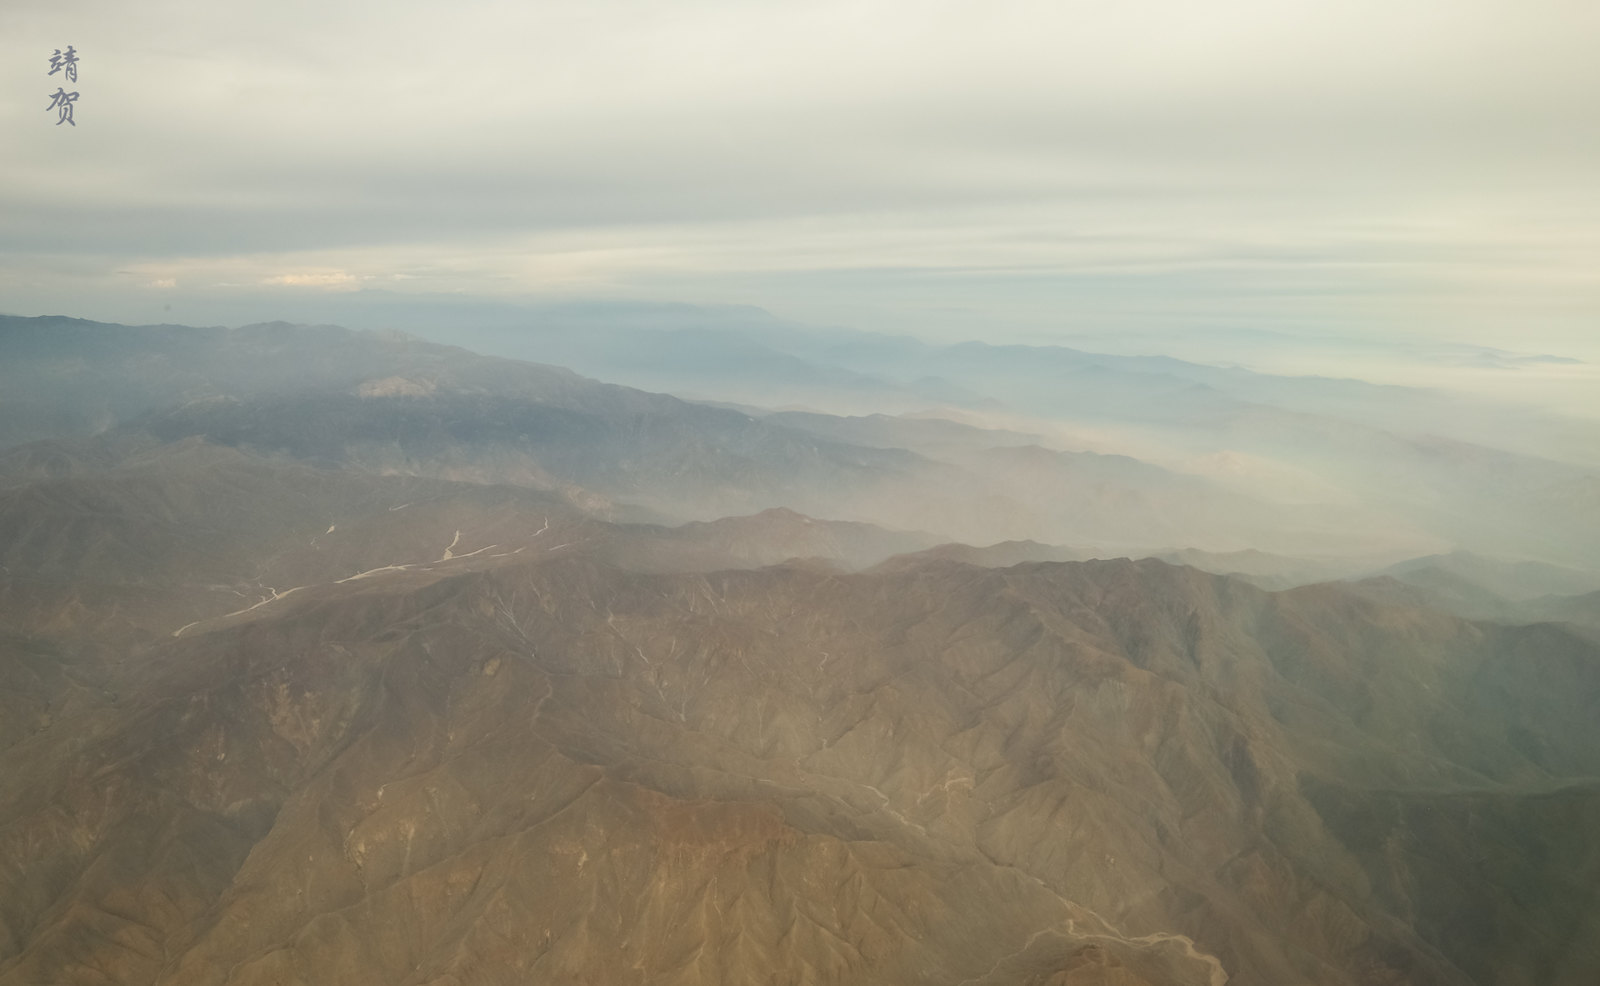 Clouds over the Andes